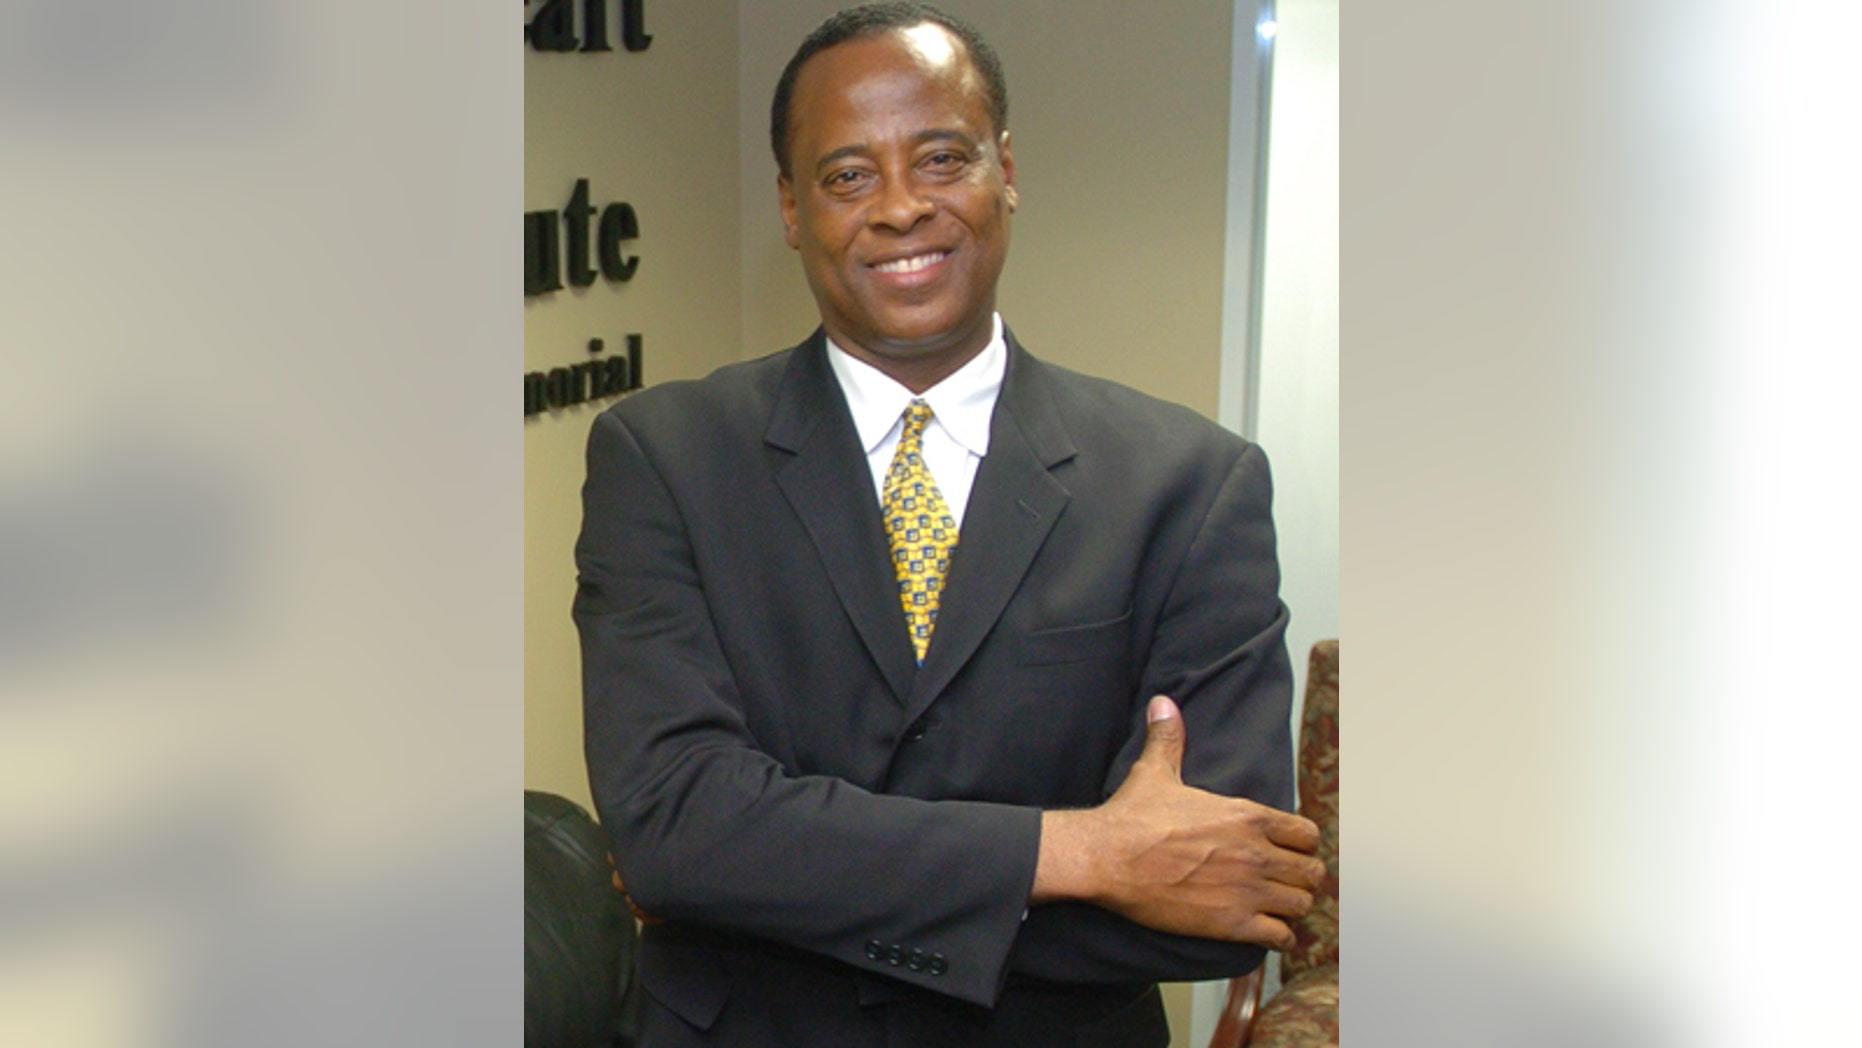 Dr. Conrad Murray, seen in this July 7, 2006, photo, was Michael Jackson's cardiologist.